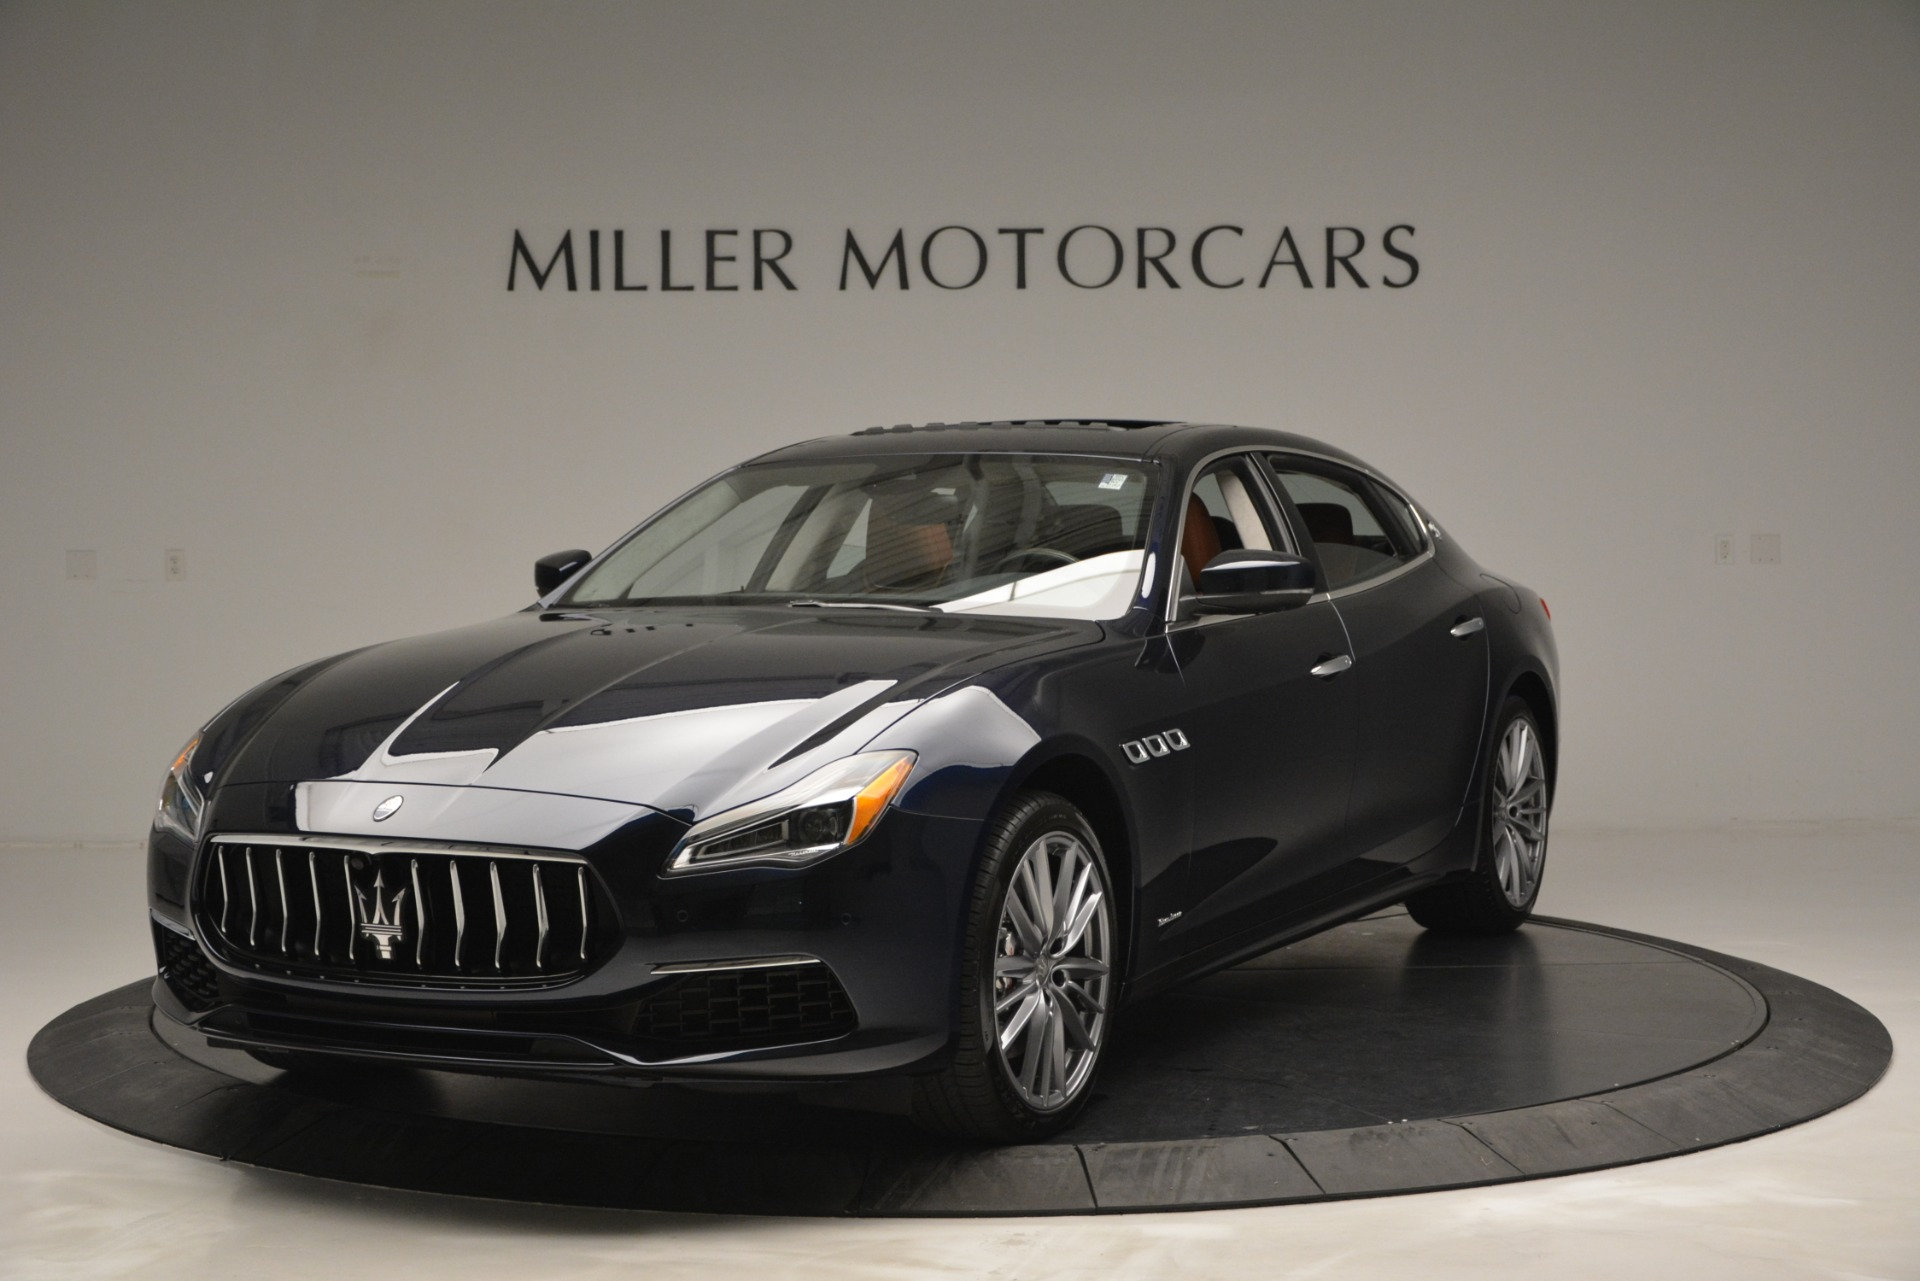 New 2019 Maserati Quattroporte S Q4 GranLusso Edizione Nobile For Sale In Greenwich, CT